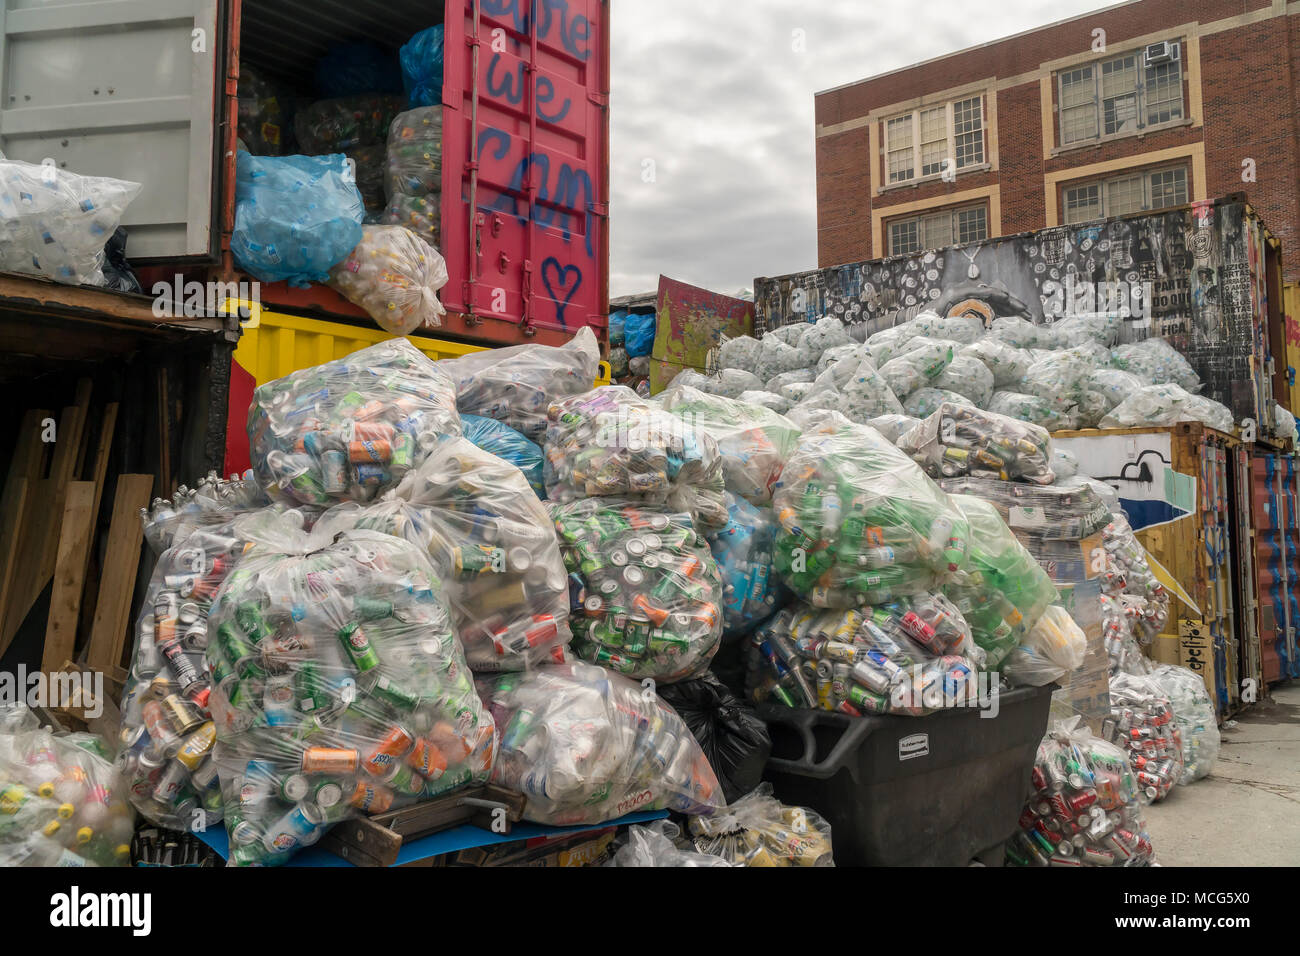 Thousands of bottles and cans await pick-up from distributors at the Sure We Can non-profit redemption center in the Bushwick neighborhood of Brooklyn in New York on Saturday, April 7, 2018. The bags of cans are stored until there are enough to fill a tractor trailer from each individual distributor who is responsible for picking them up. (©ÊRichard B. Levine) - Stock Image